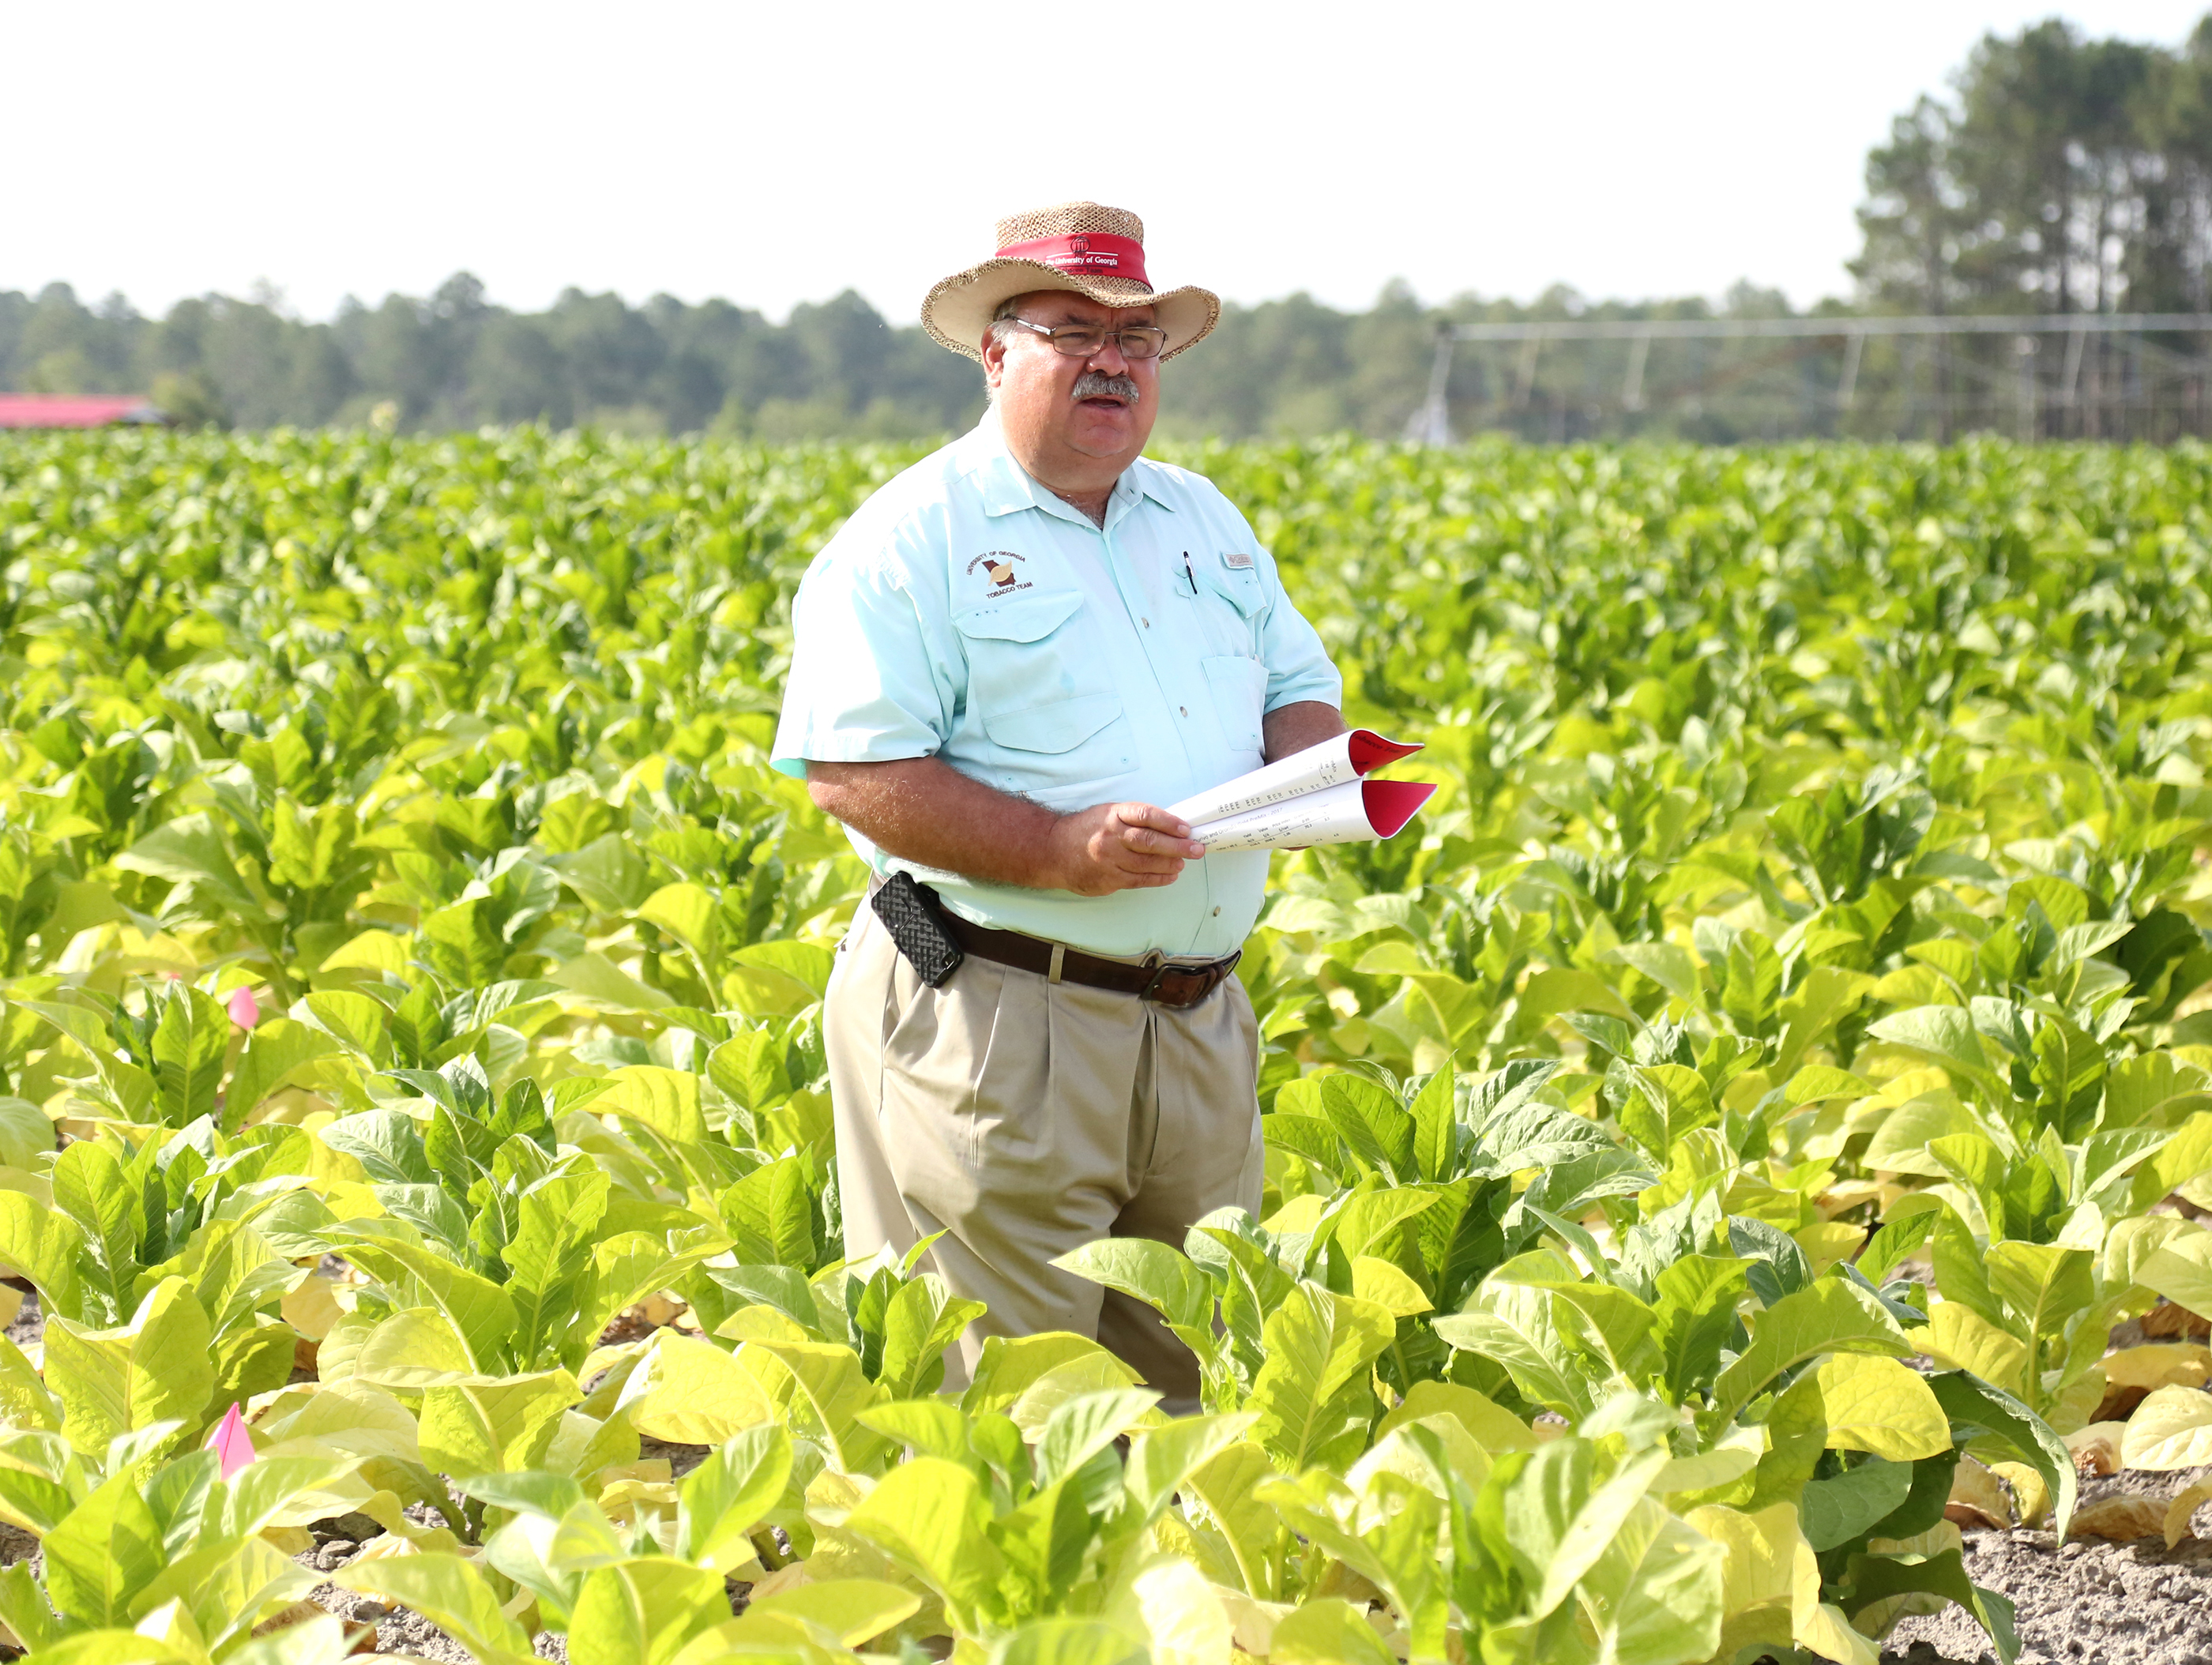 Extension tobacco agronomist J. Michael Moore speaks during the Tobacco Tour on June 13, 2018.